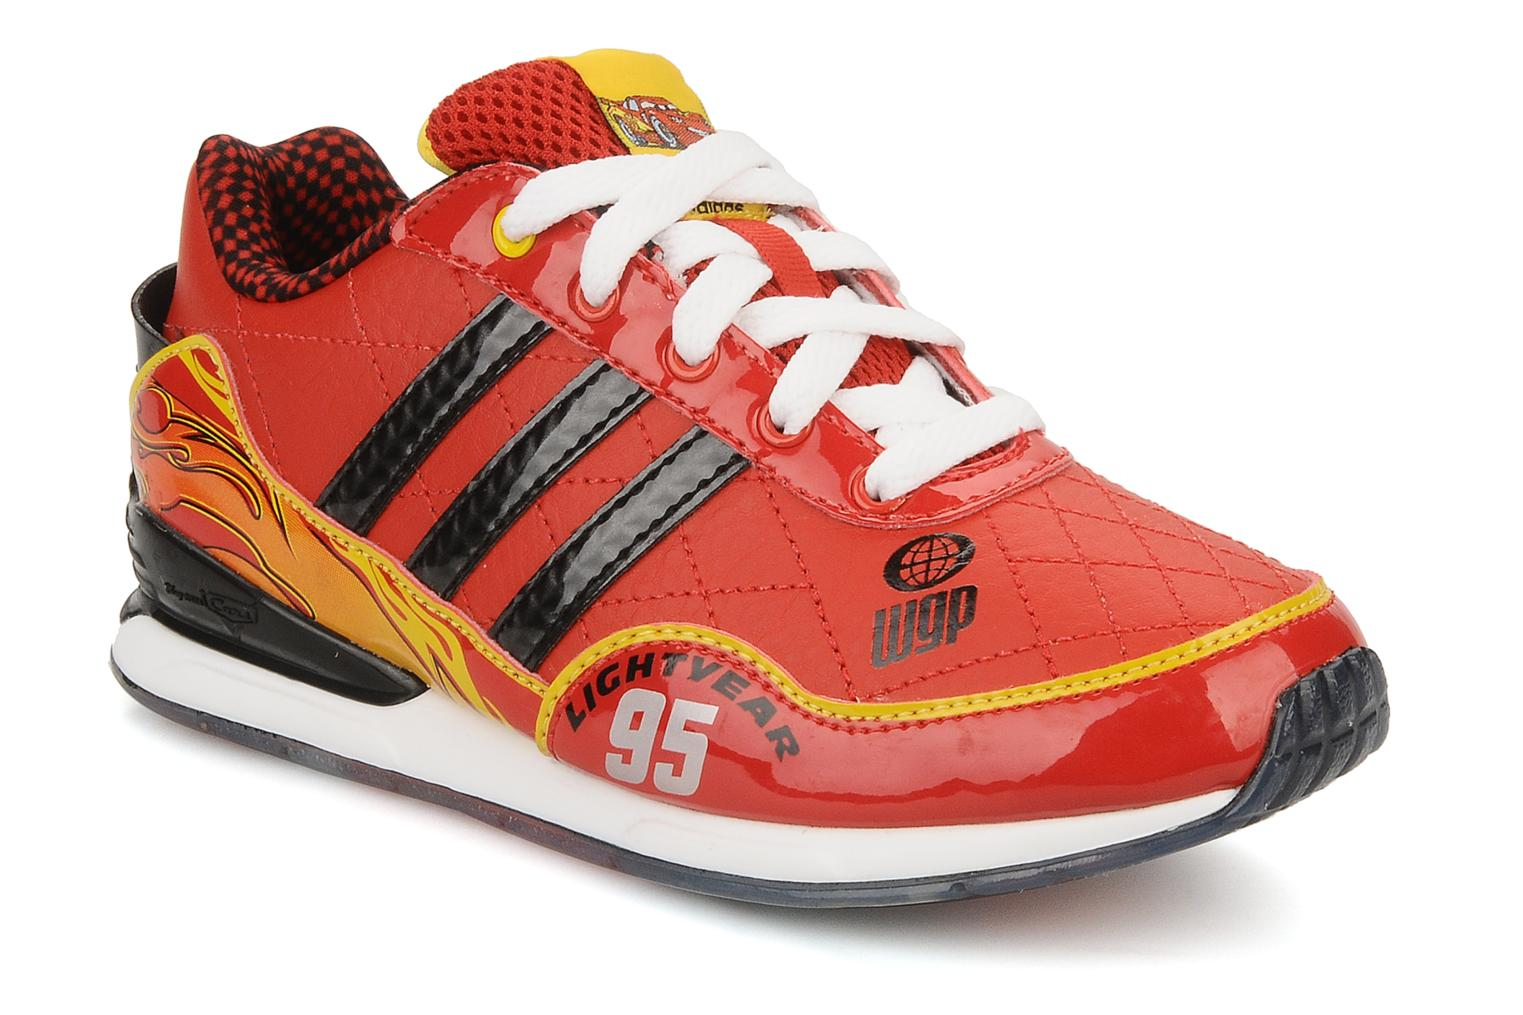 Adidas Performance (Rojo) Disney cars 2 c (Rojo) Performance Zapatillas de deporte bcbef3